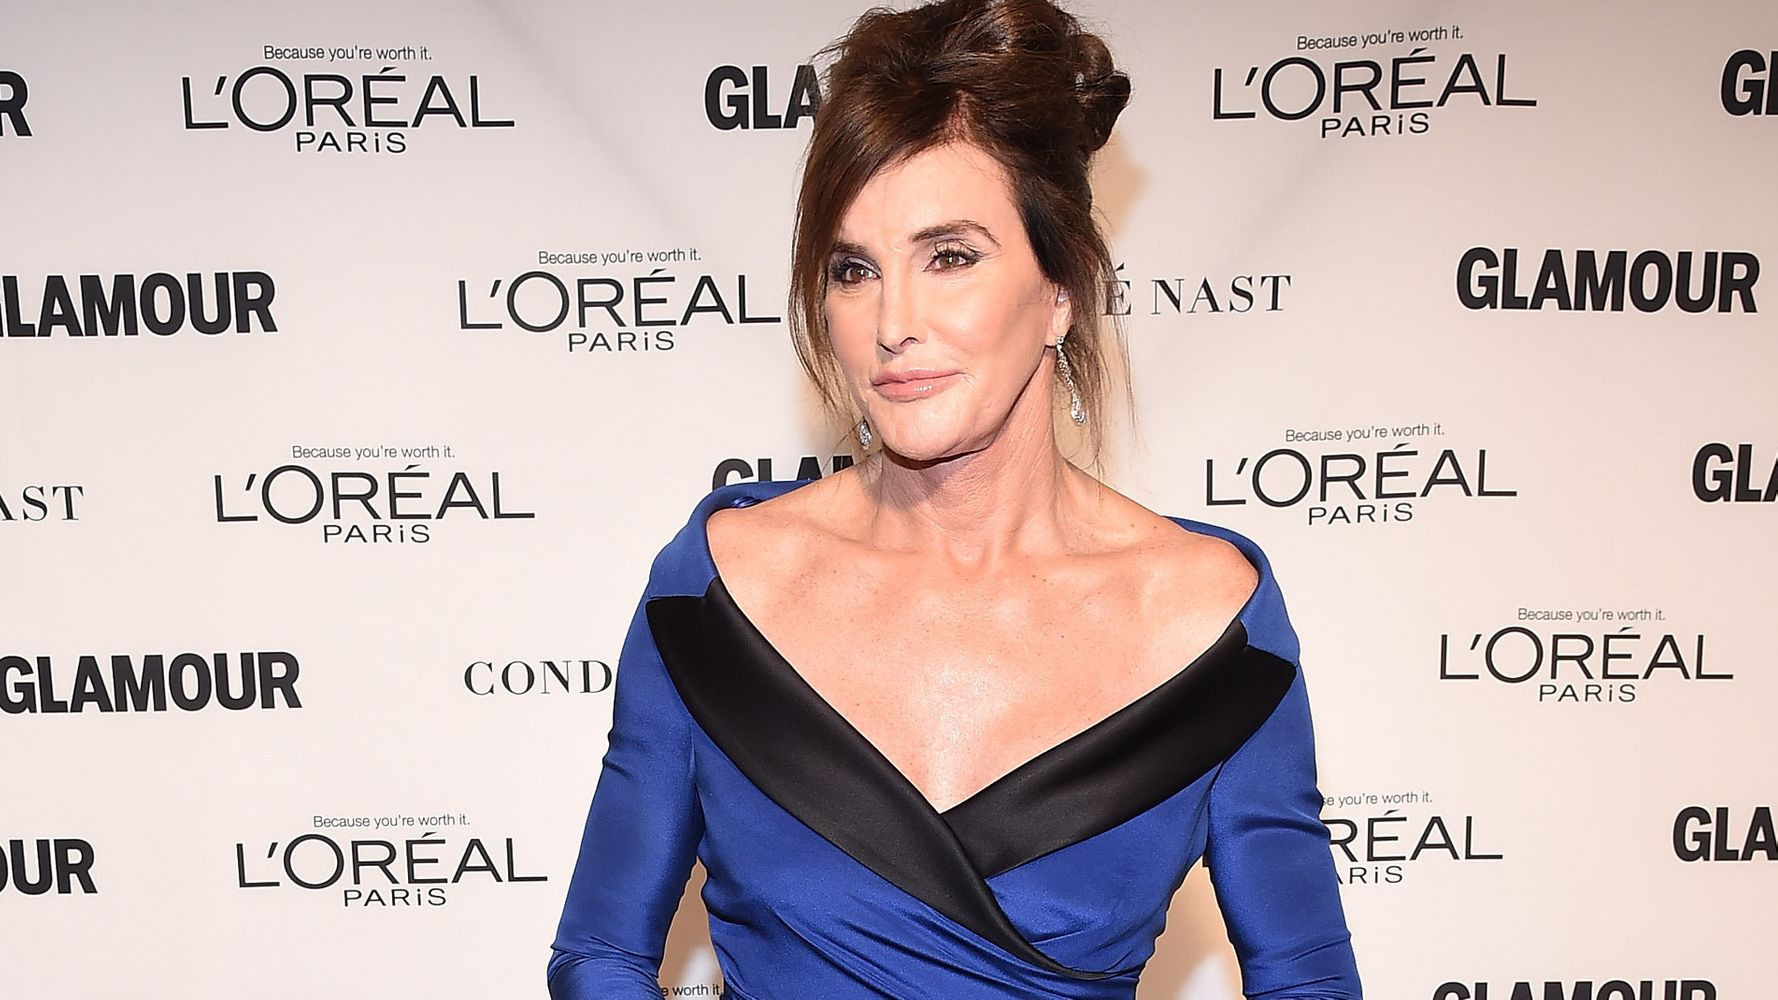 Caitlyn Jenner Stuns In Her Most Glamorous Look Yet